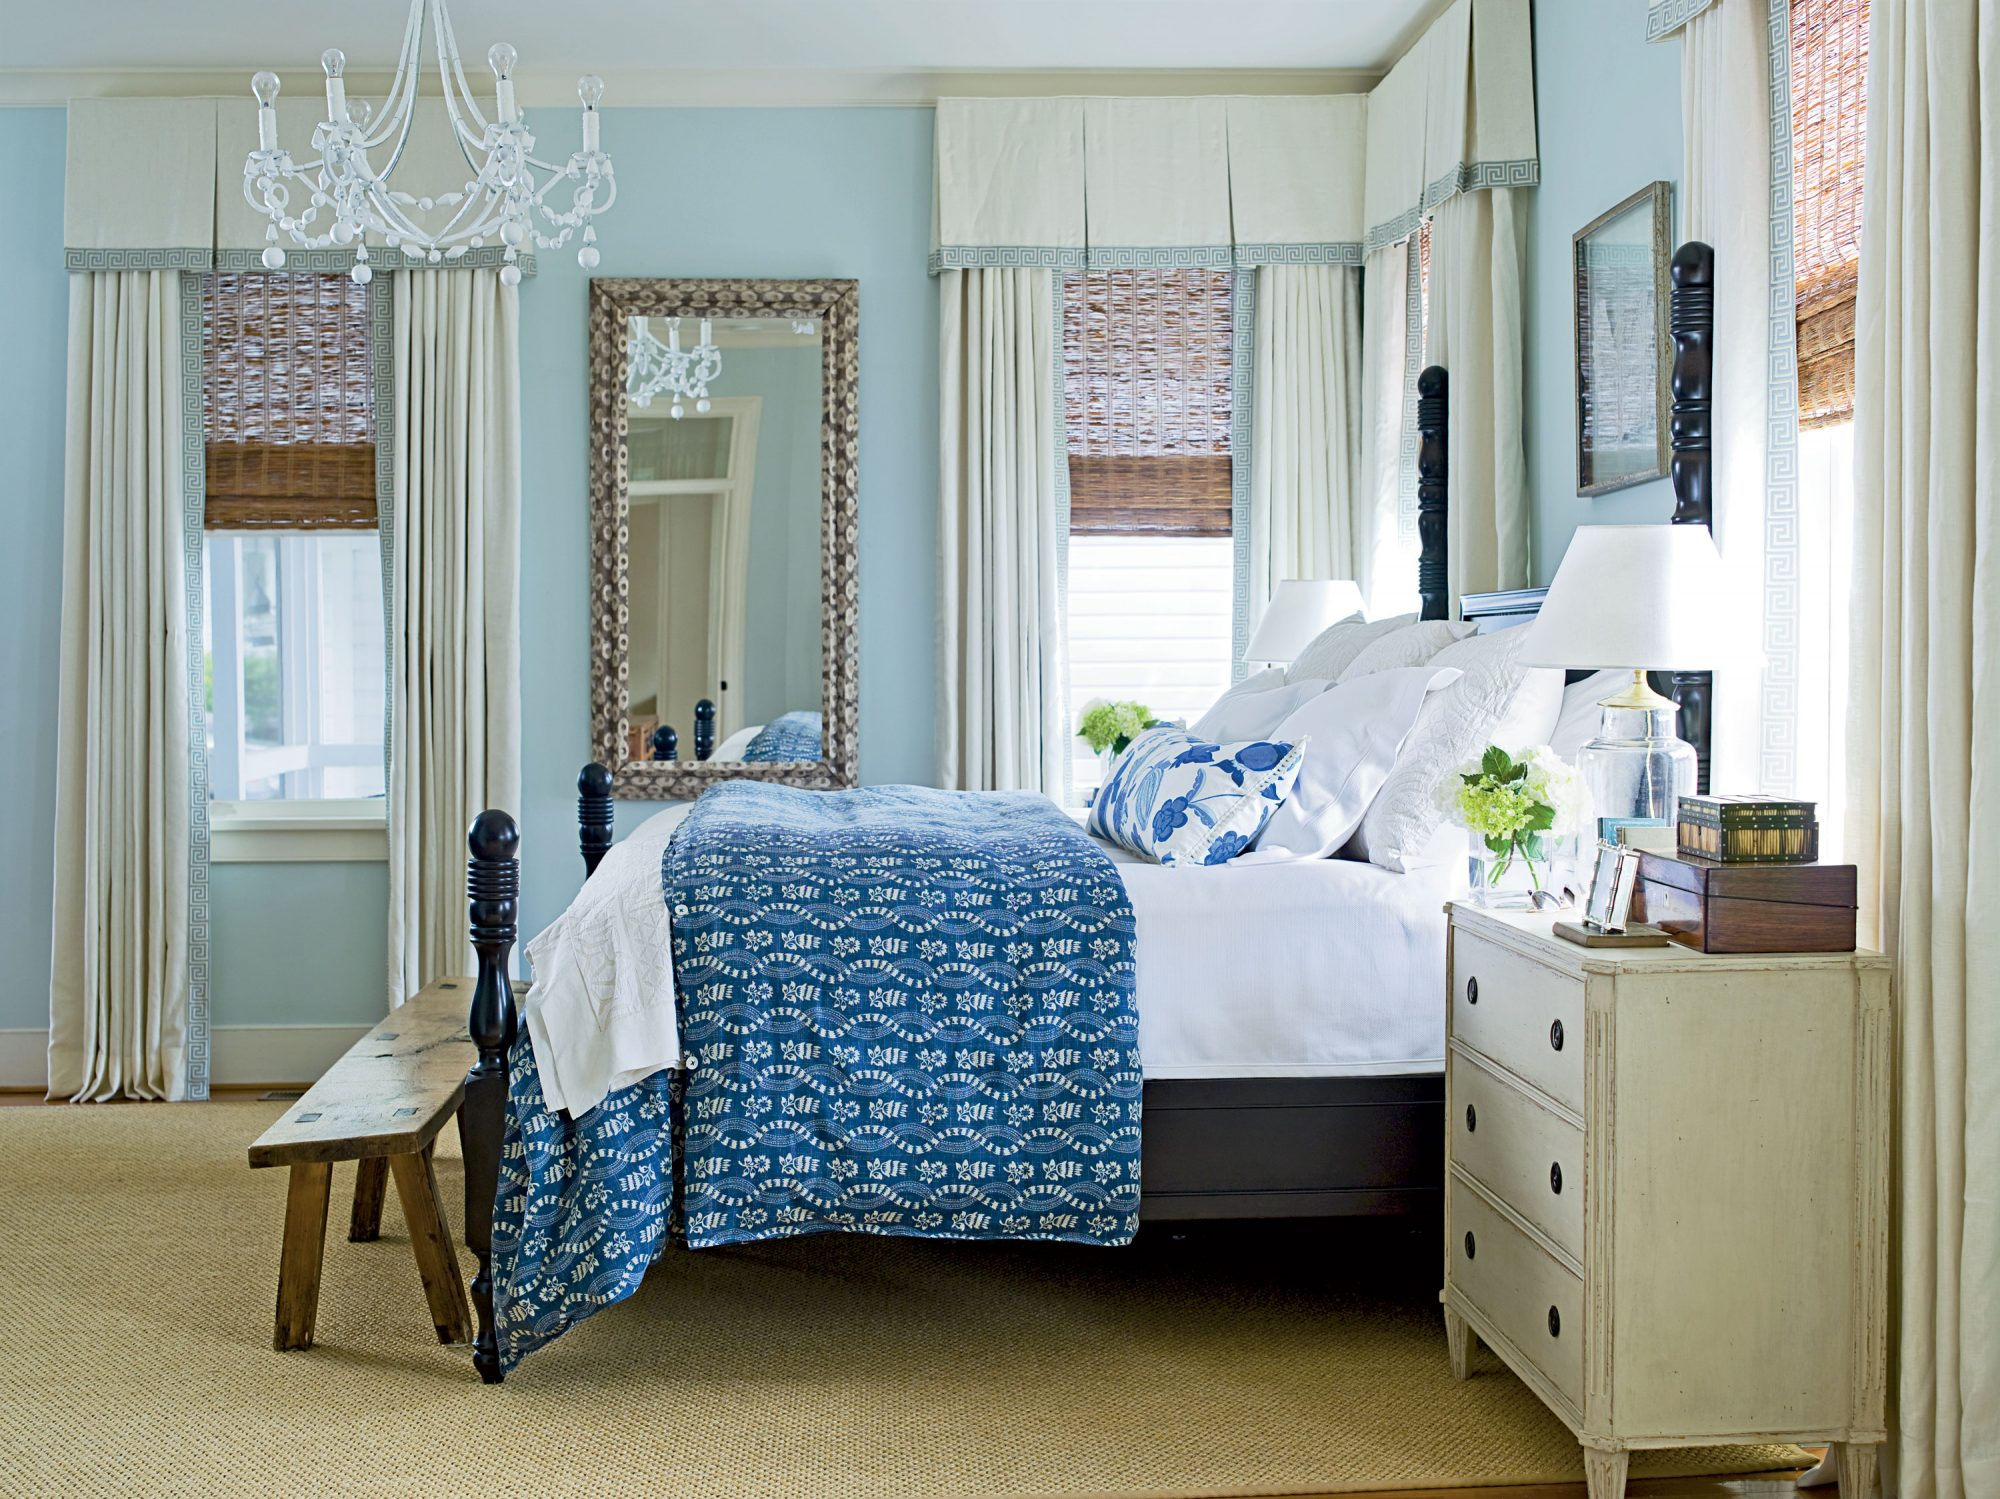 Inspired by the harbor, the homeowners chose a calming blue palette and added an oyster shell-encrusted mirror. They mixed in elements that really bring the room to life—throw pillows and a killer light fixture.